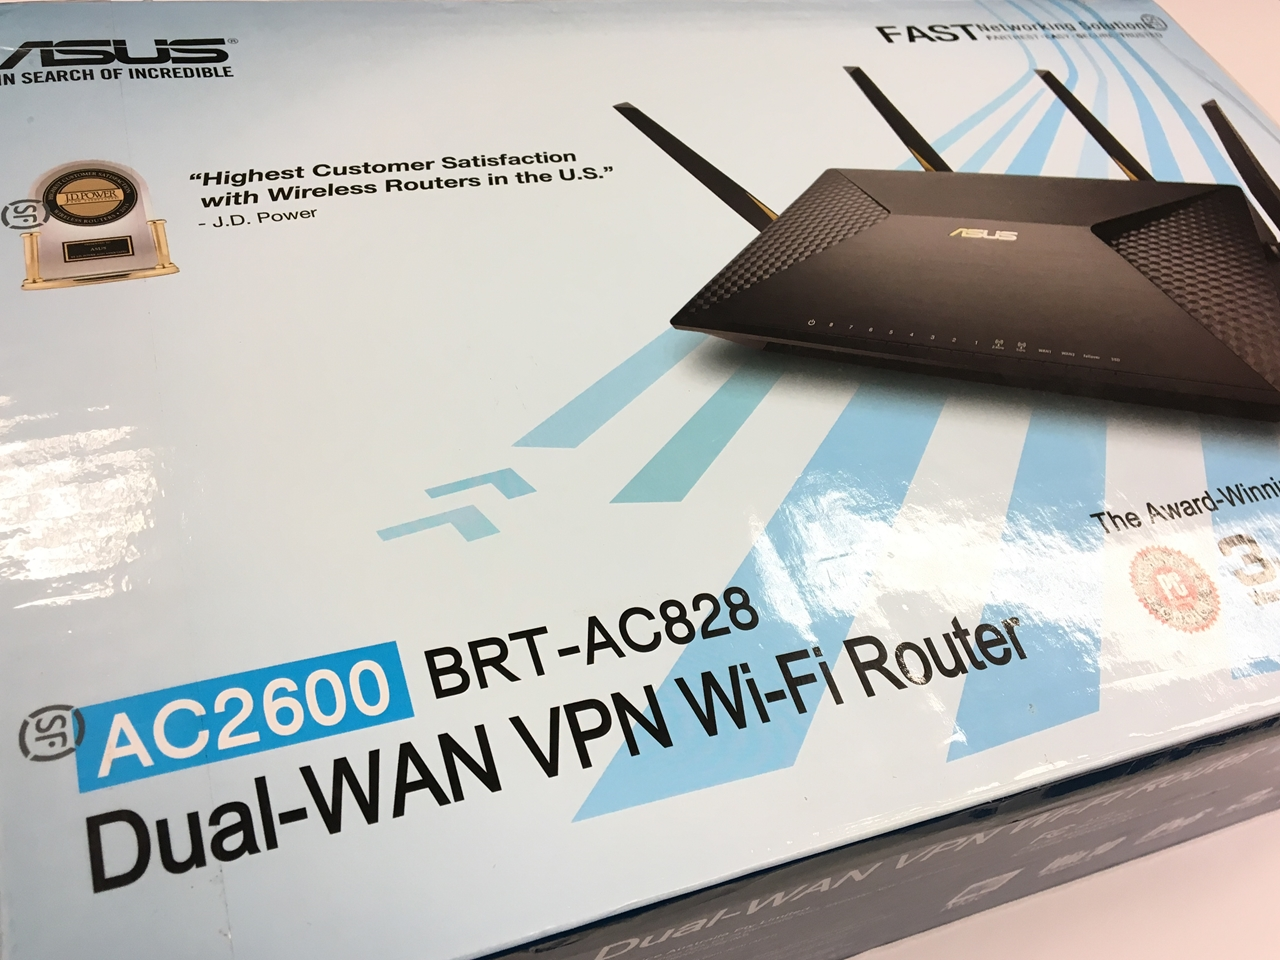 Asus BRT-828 AC2600 Dual-WAN VPN WiFi Router Review - Page 5 of 5 ...